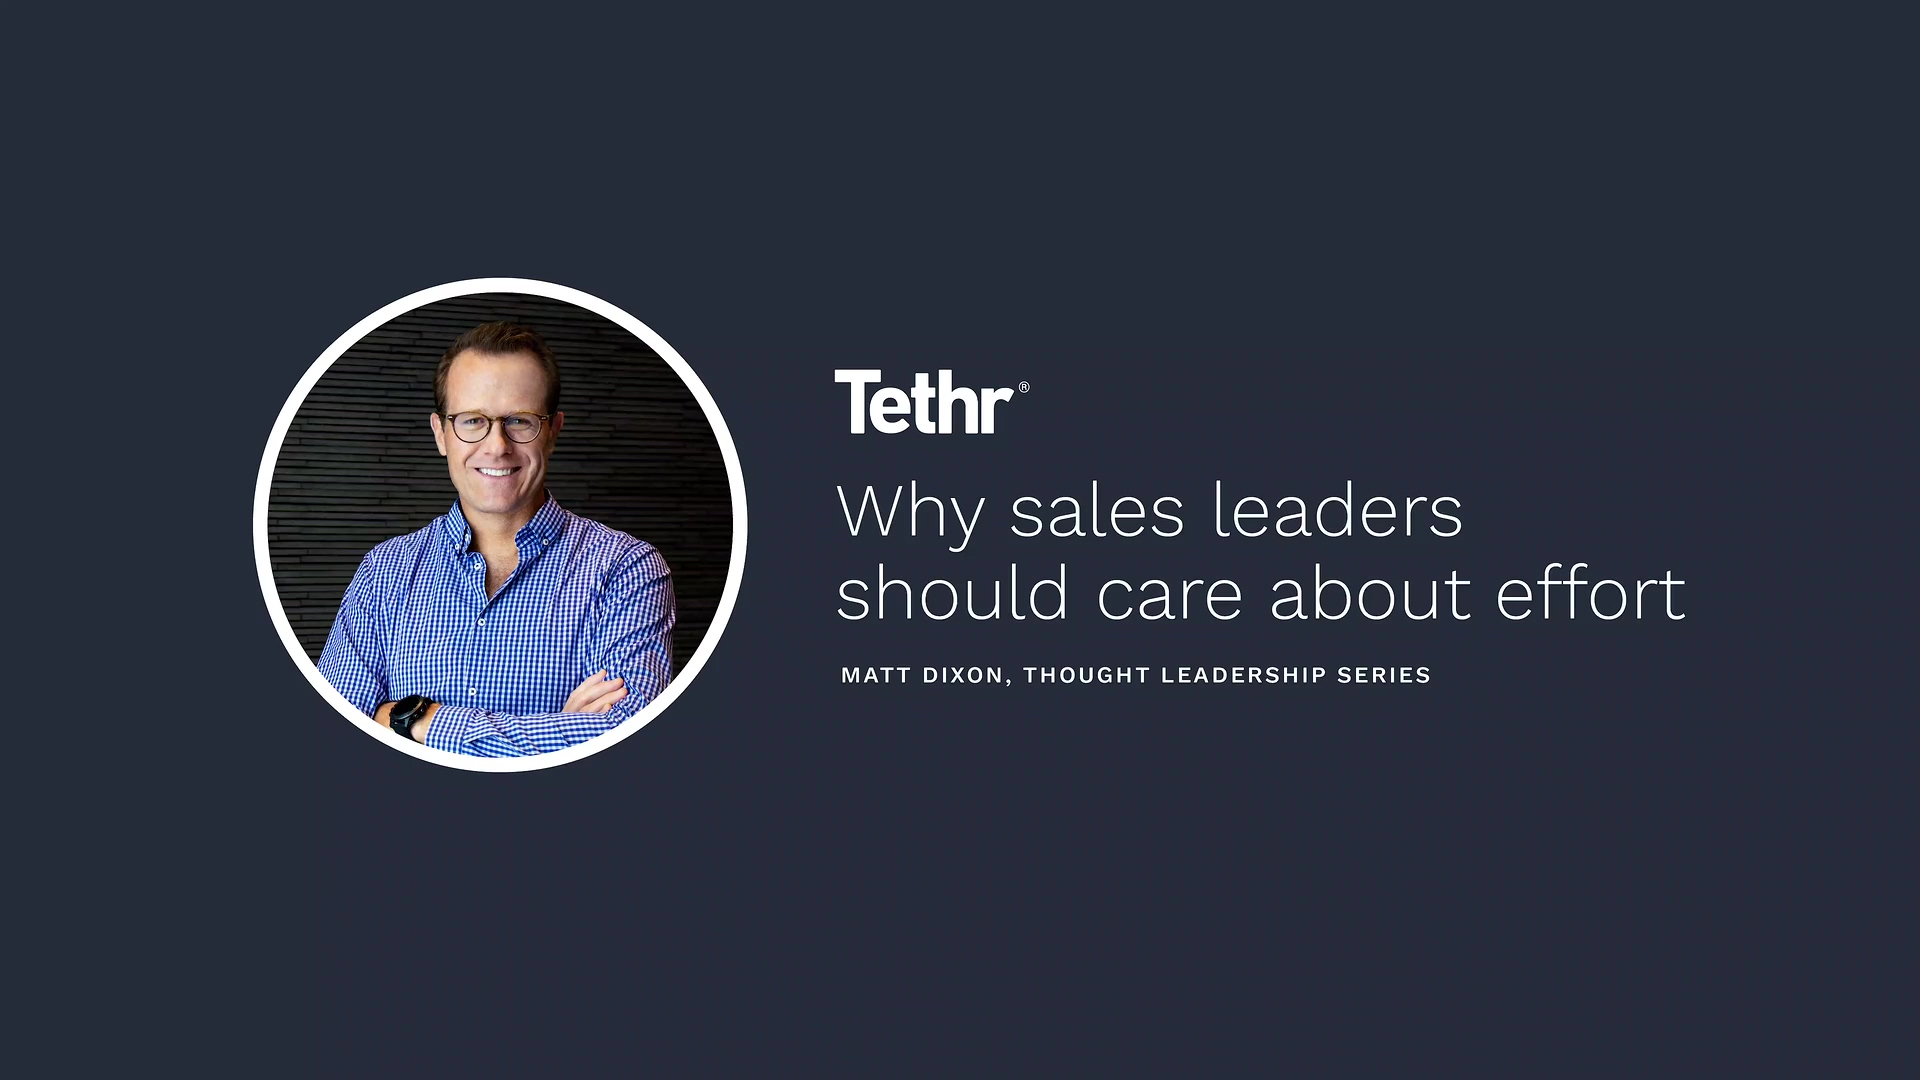 Tethr - Why sales leaders should care about effort